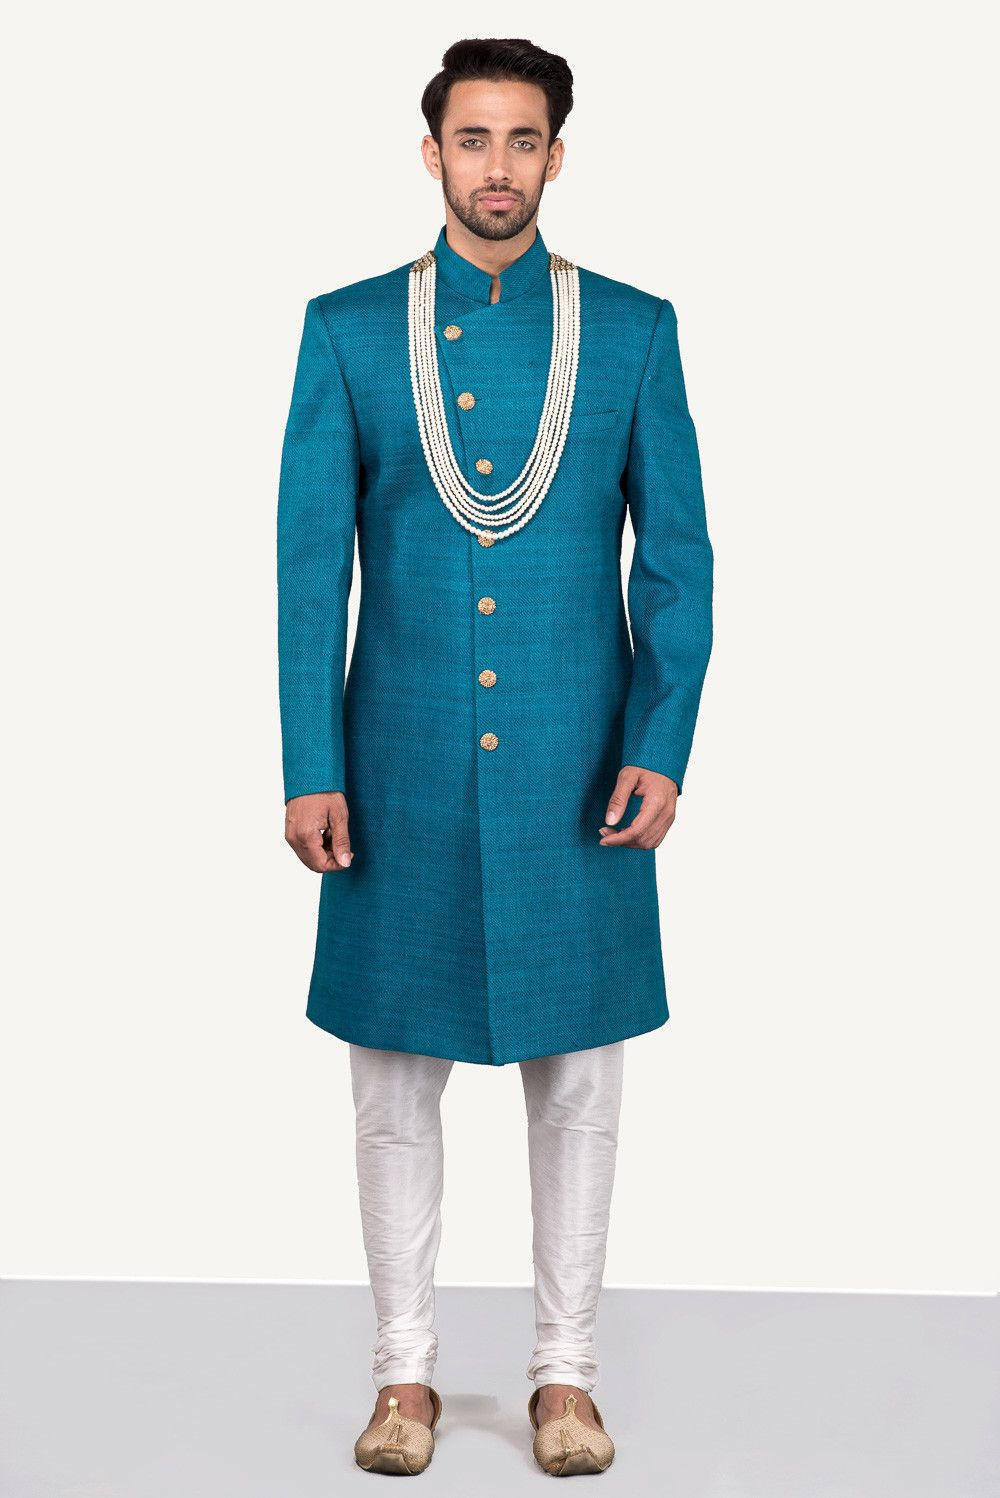 THE STYLE LOFT BY RITU DEORA Teal Blue Cross-Over Sherwani With ...